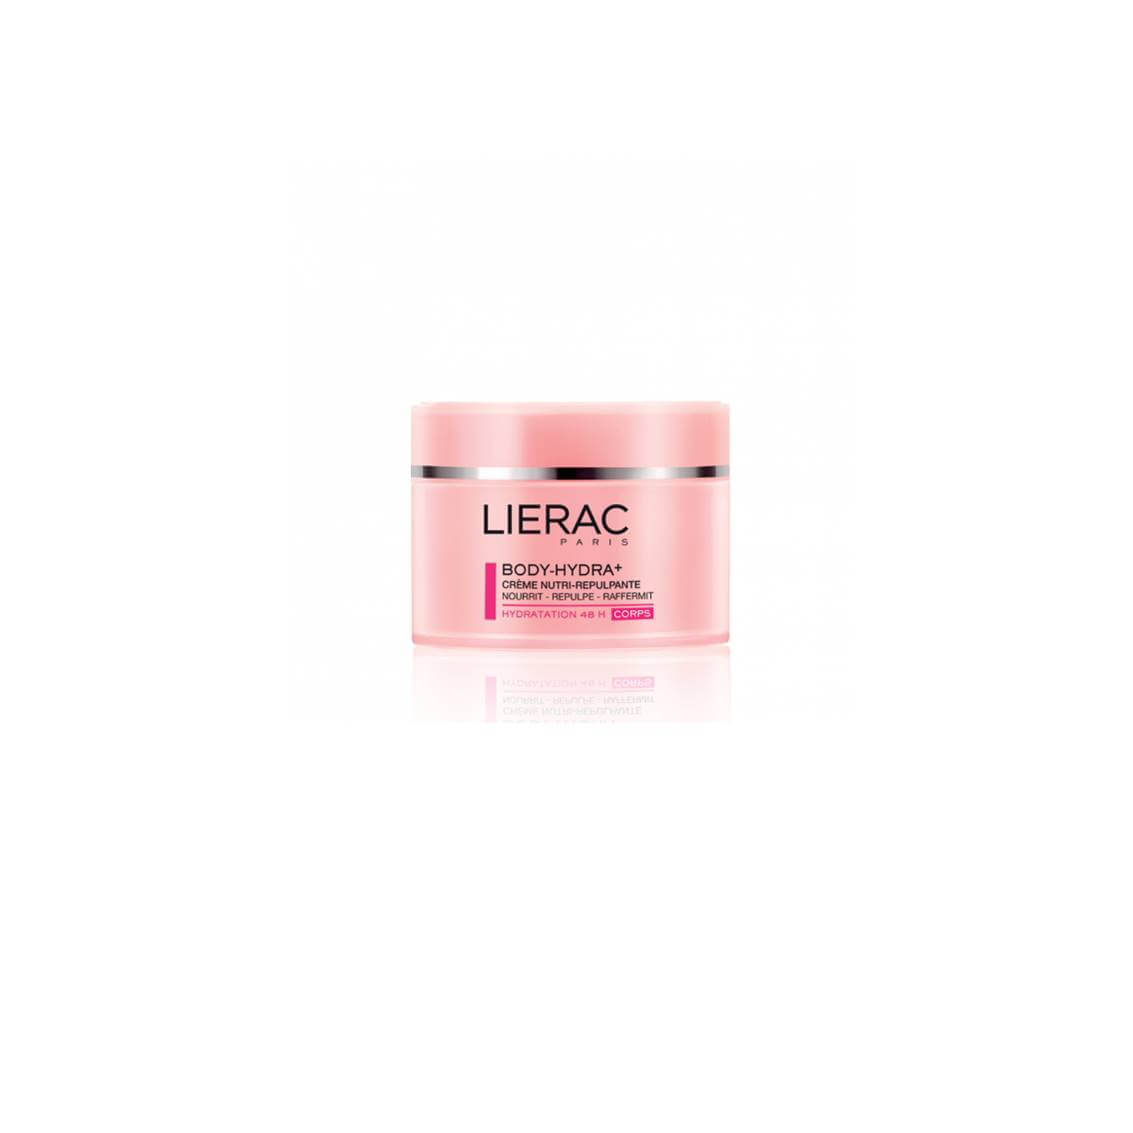 Lierac body-hydra+ 200ml